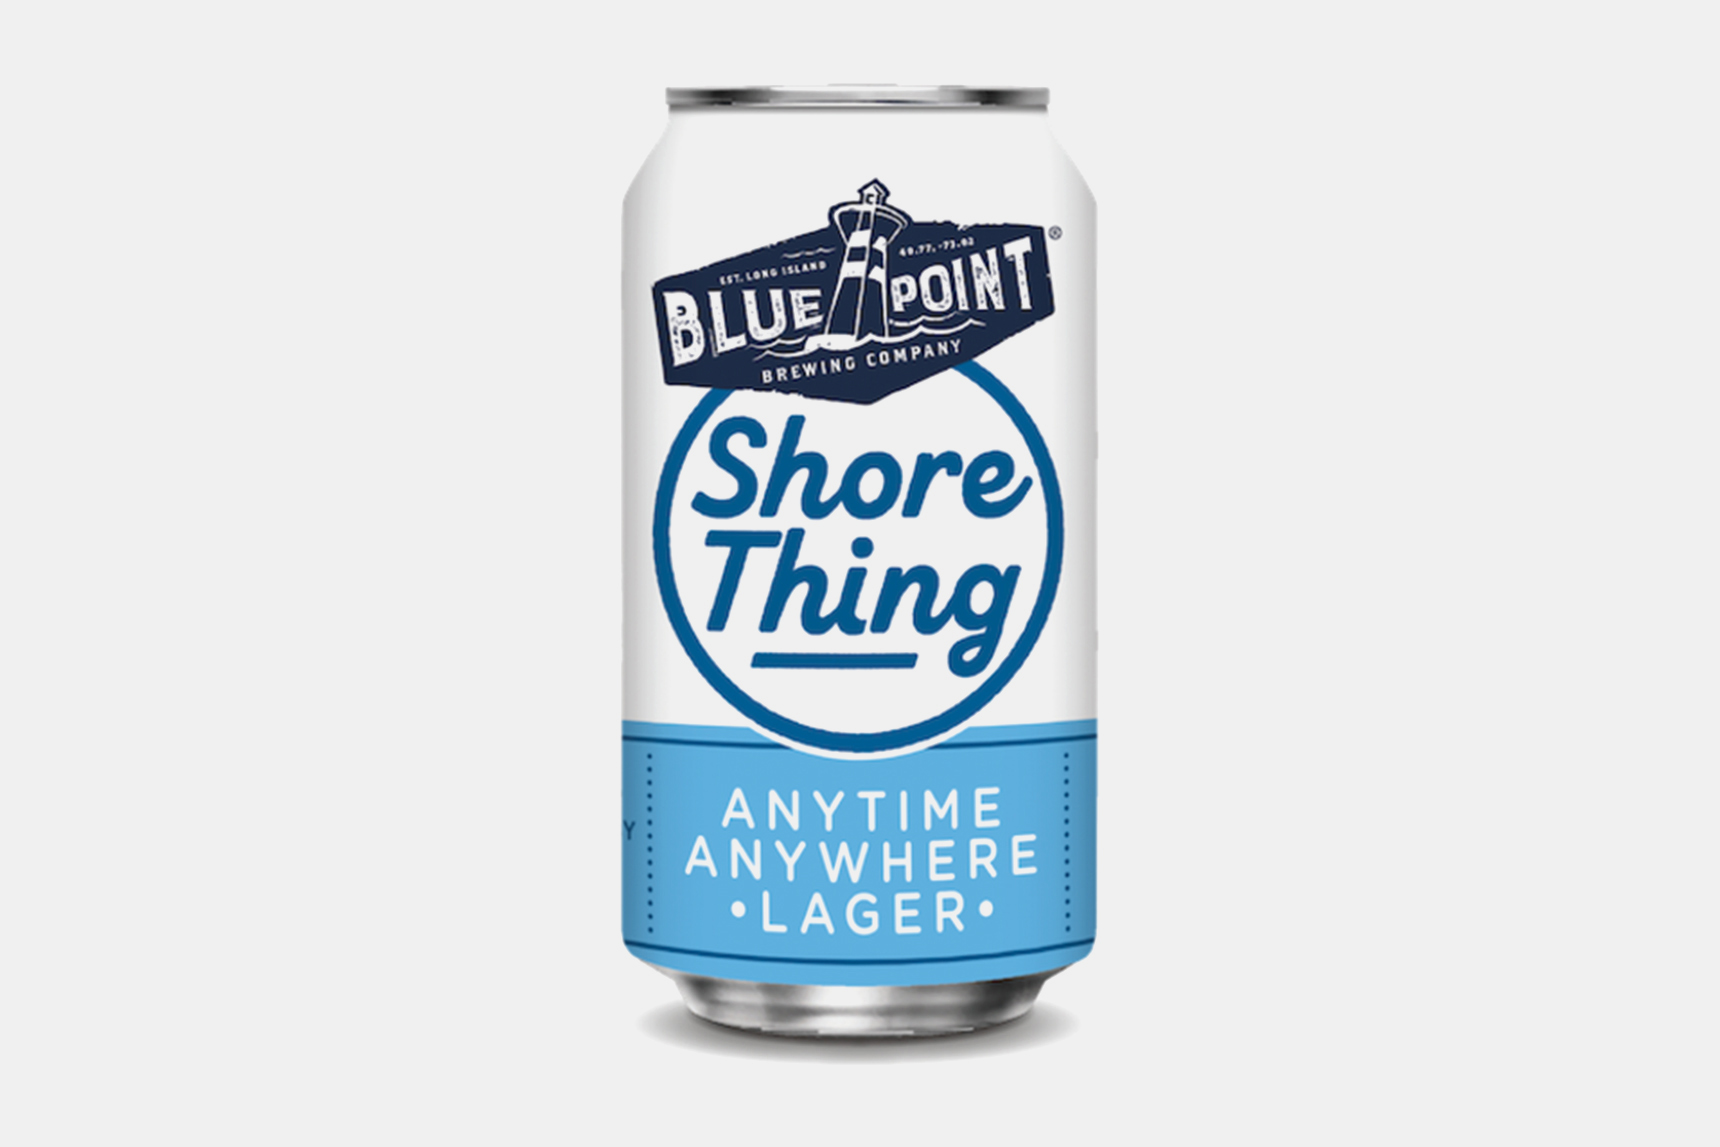 Blue Point Shore Thing